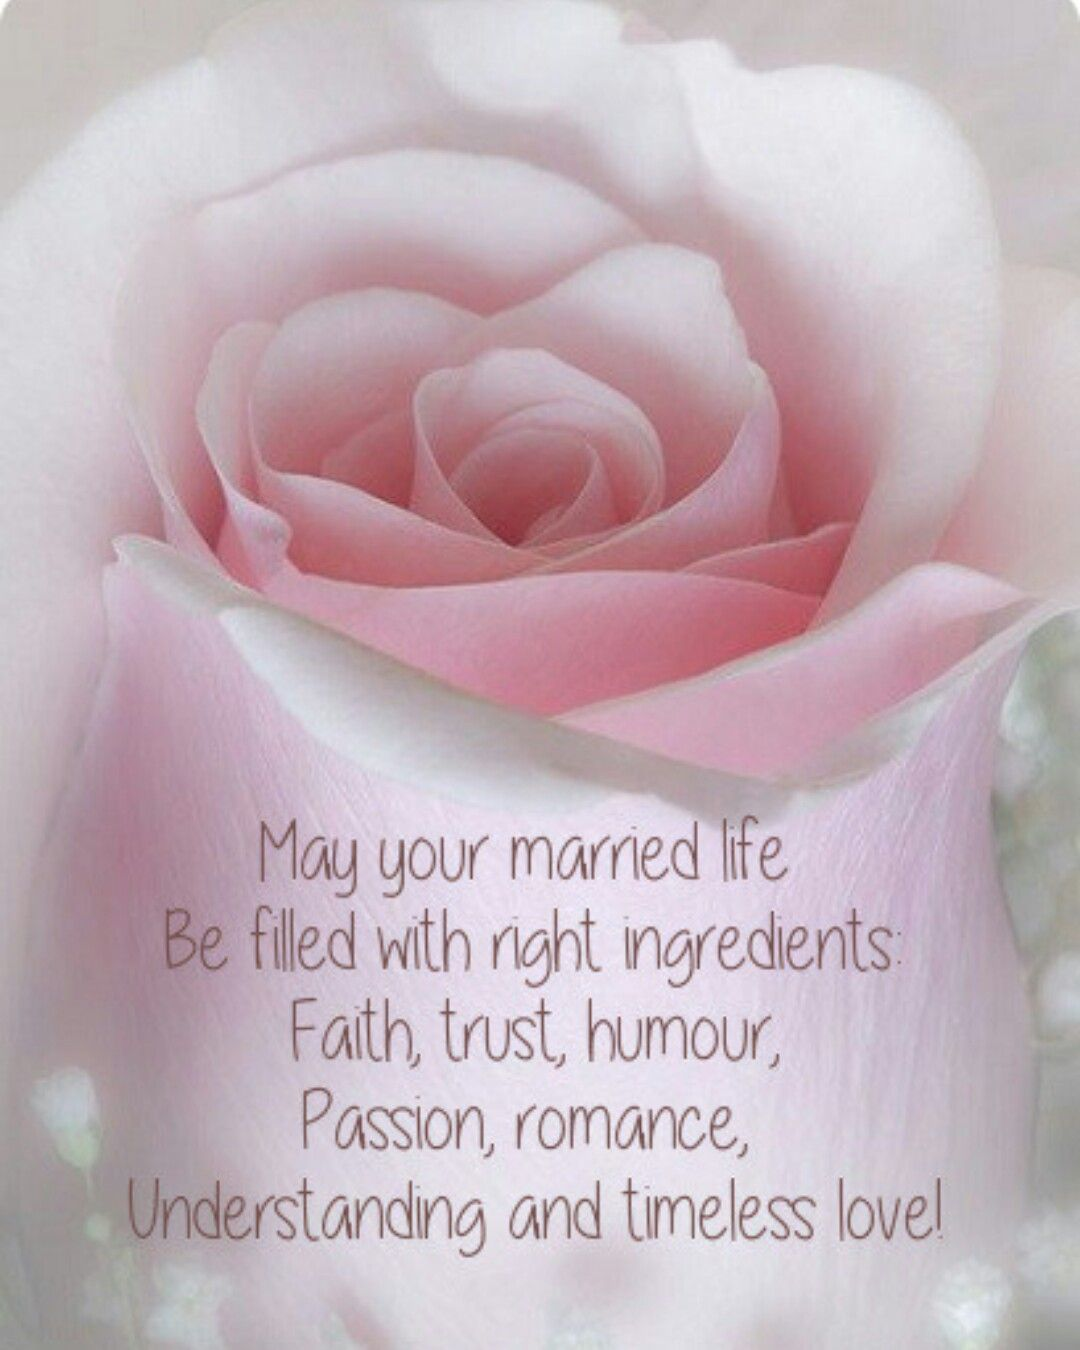 May your married life be filled with right ingredients